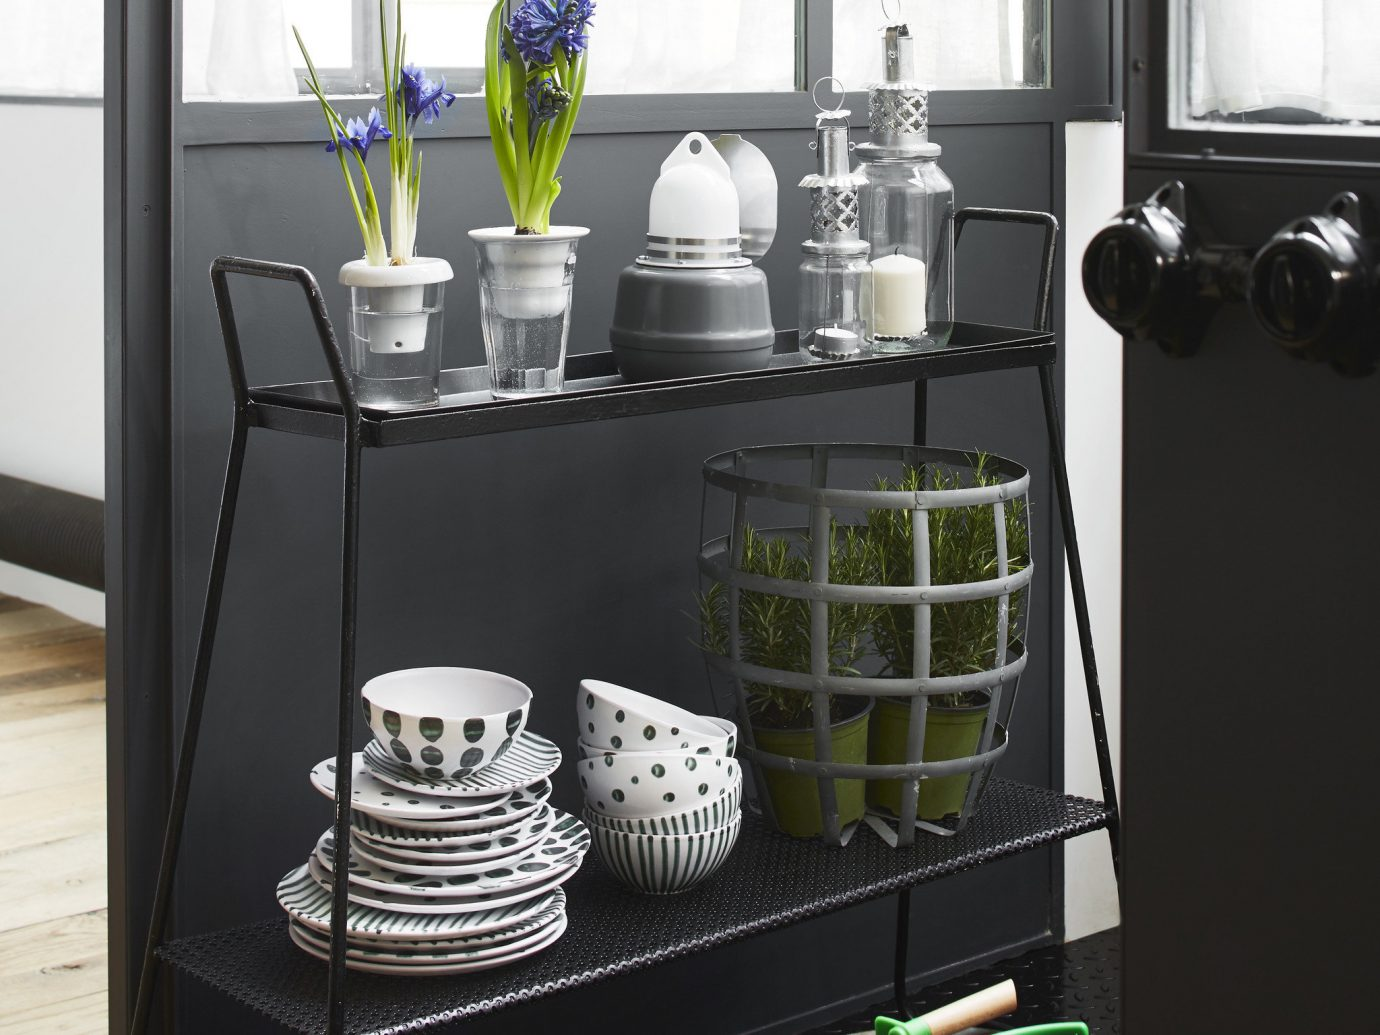 France Paris Trip Ideas indoor furniture window room table shelf chest of drawers shelving interior design living room drawer